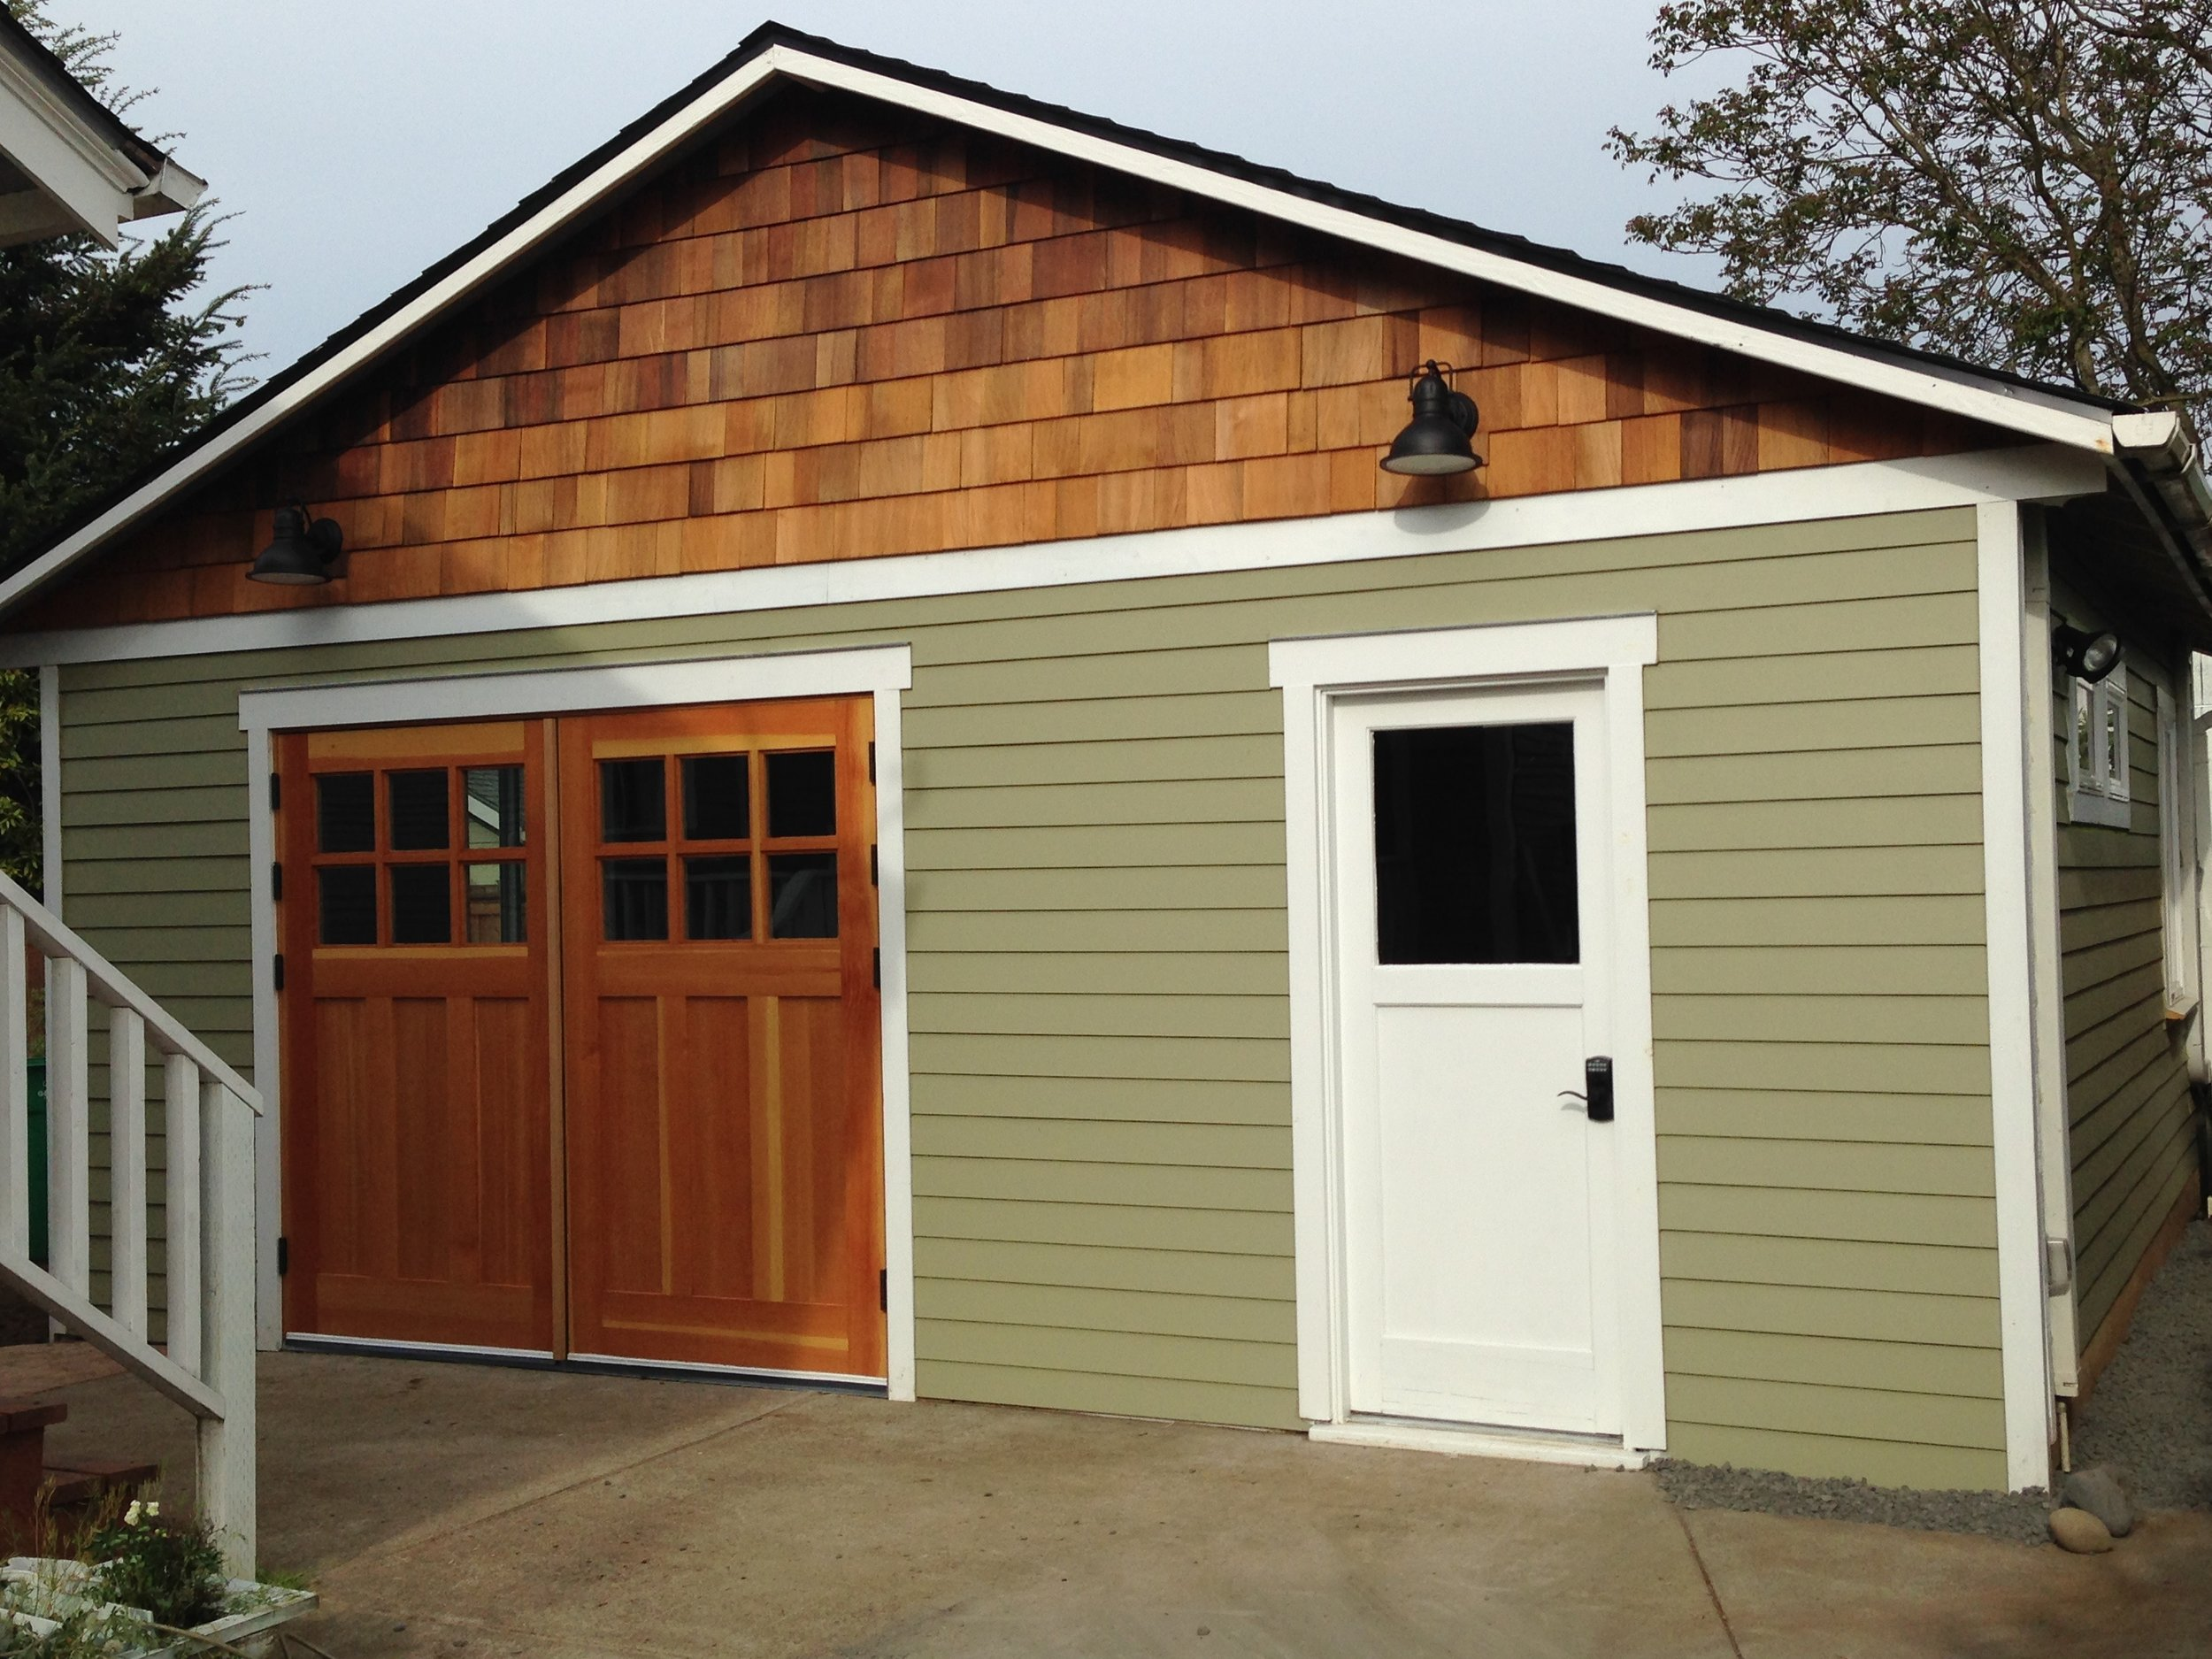 Superb How To Save Money With A Garage Conversion ADU